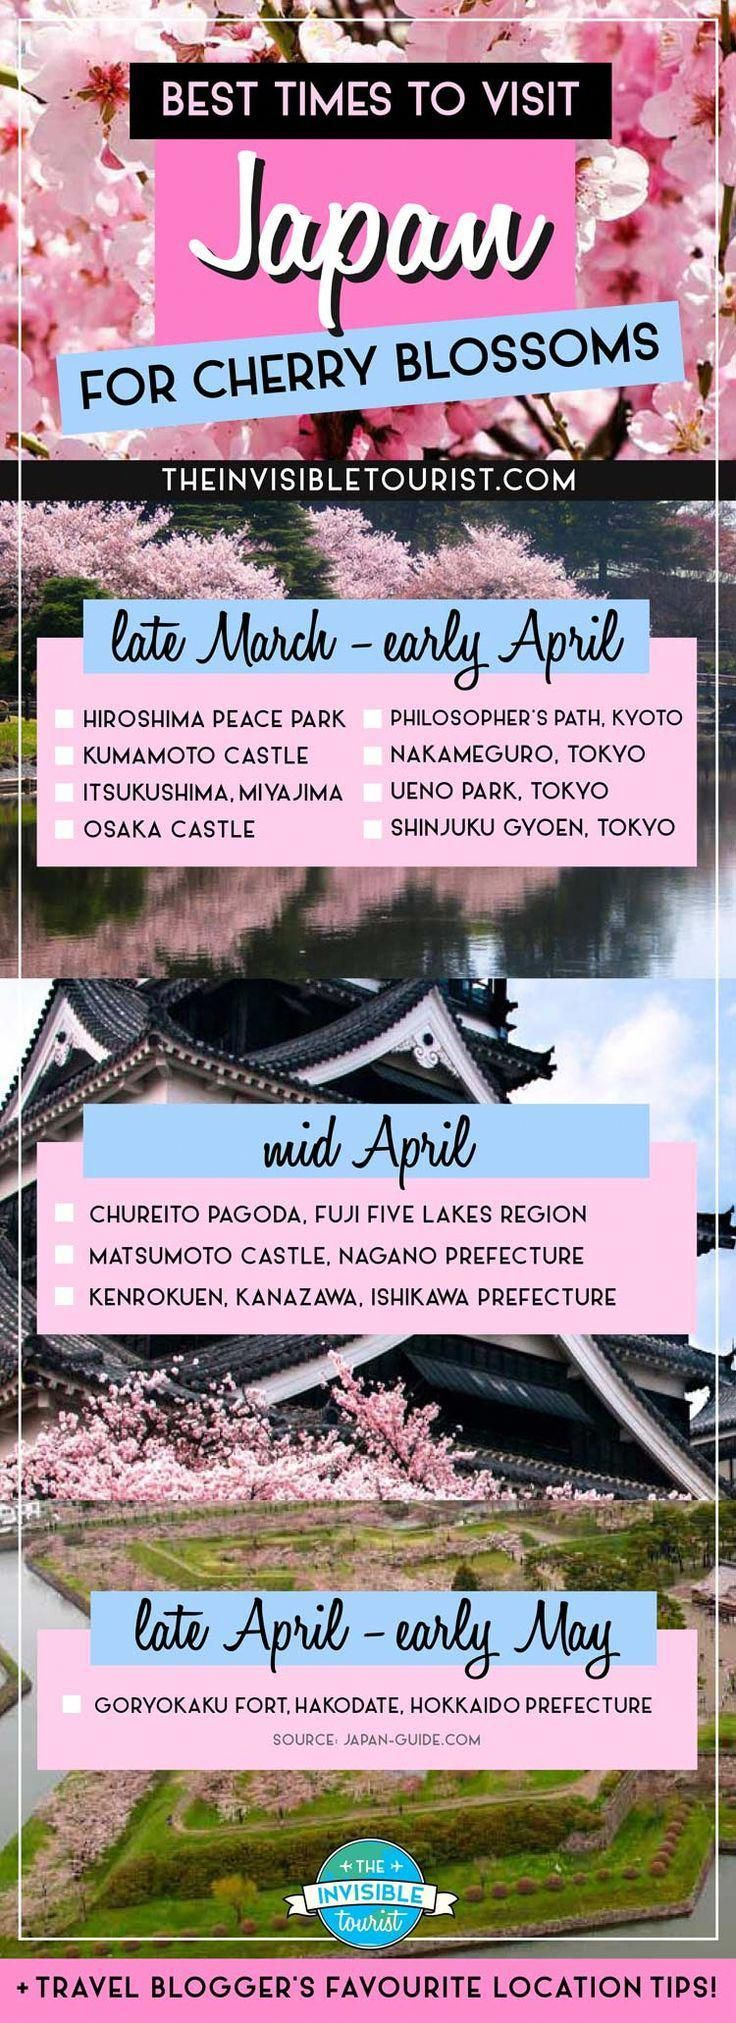 The Best Time to Visit Japan for Cherry Blossoms